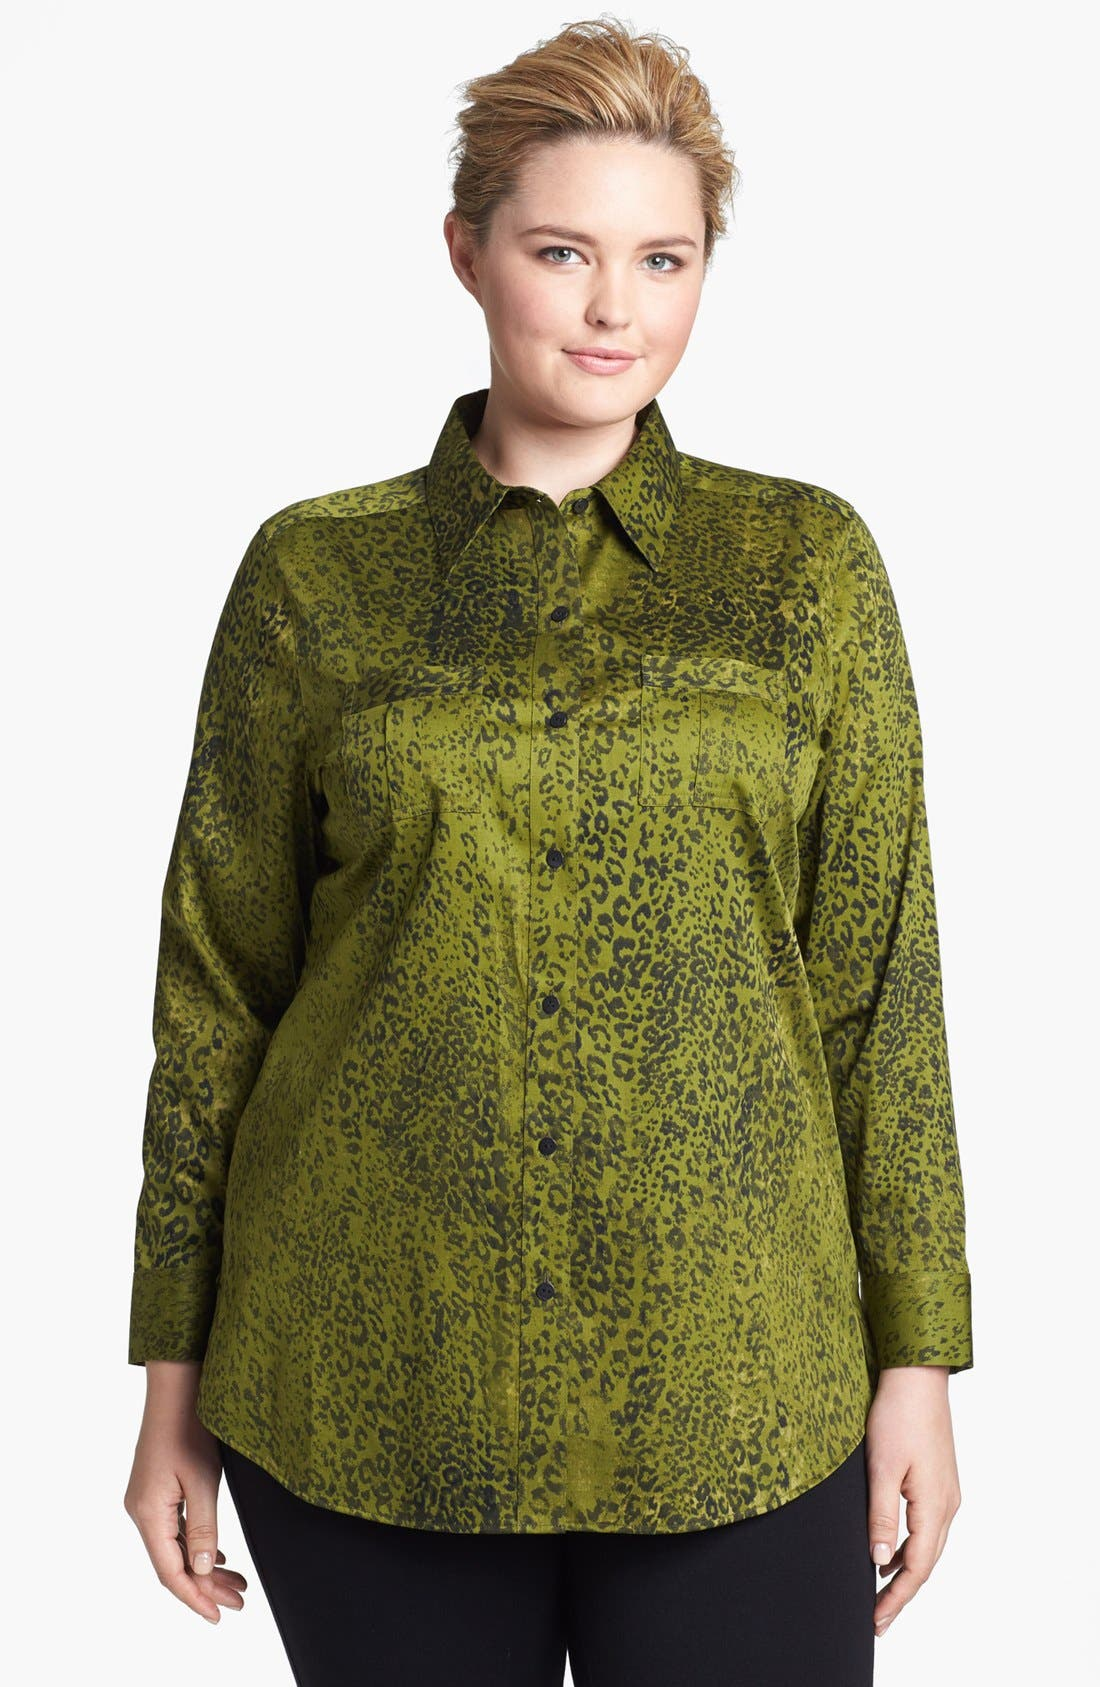 Alternate Image 1 Selected - Foxcroft 'Safari Leopard' Shaped Shirt (Plus Size)